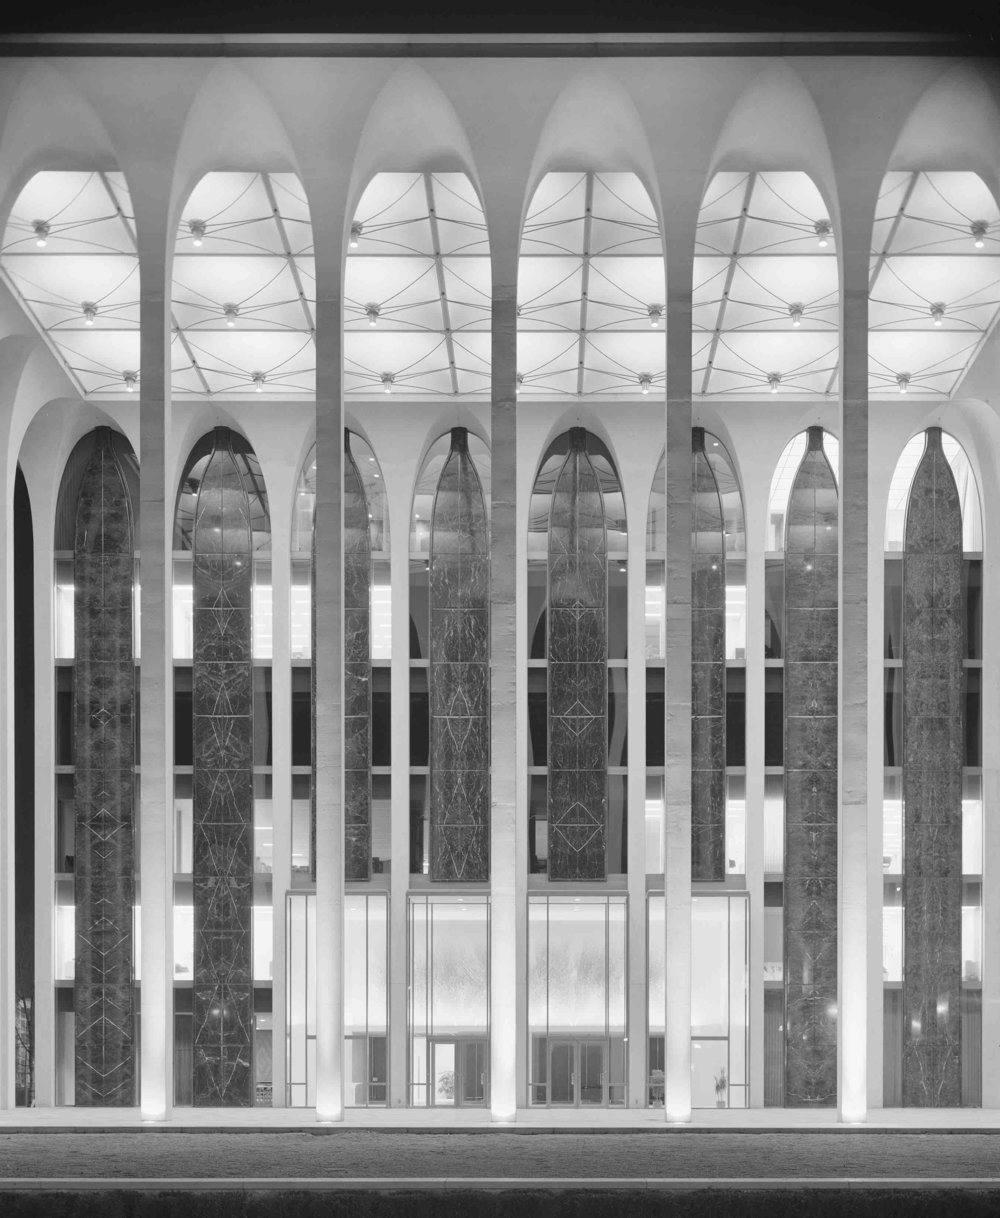 Minoru Yamasaki, Northwestern Mutual Life Building (Minneapolis, MN) 1965